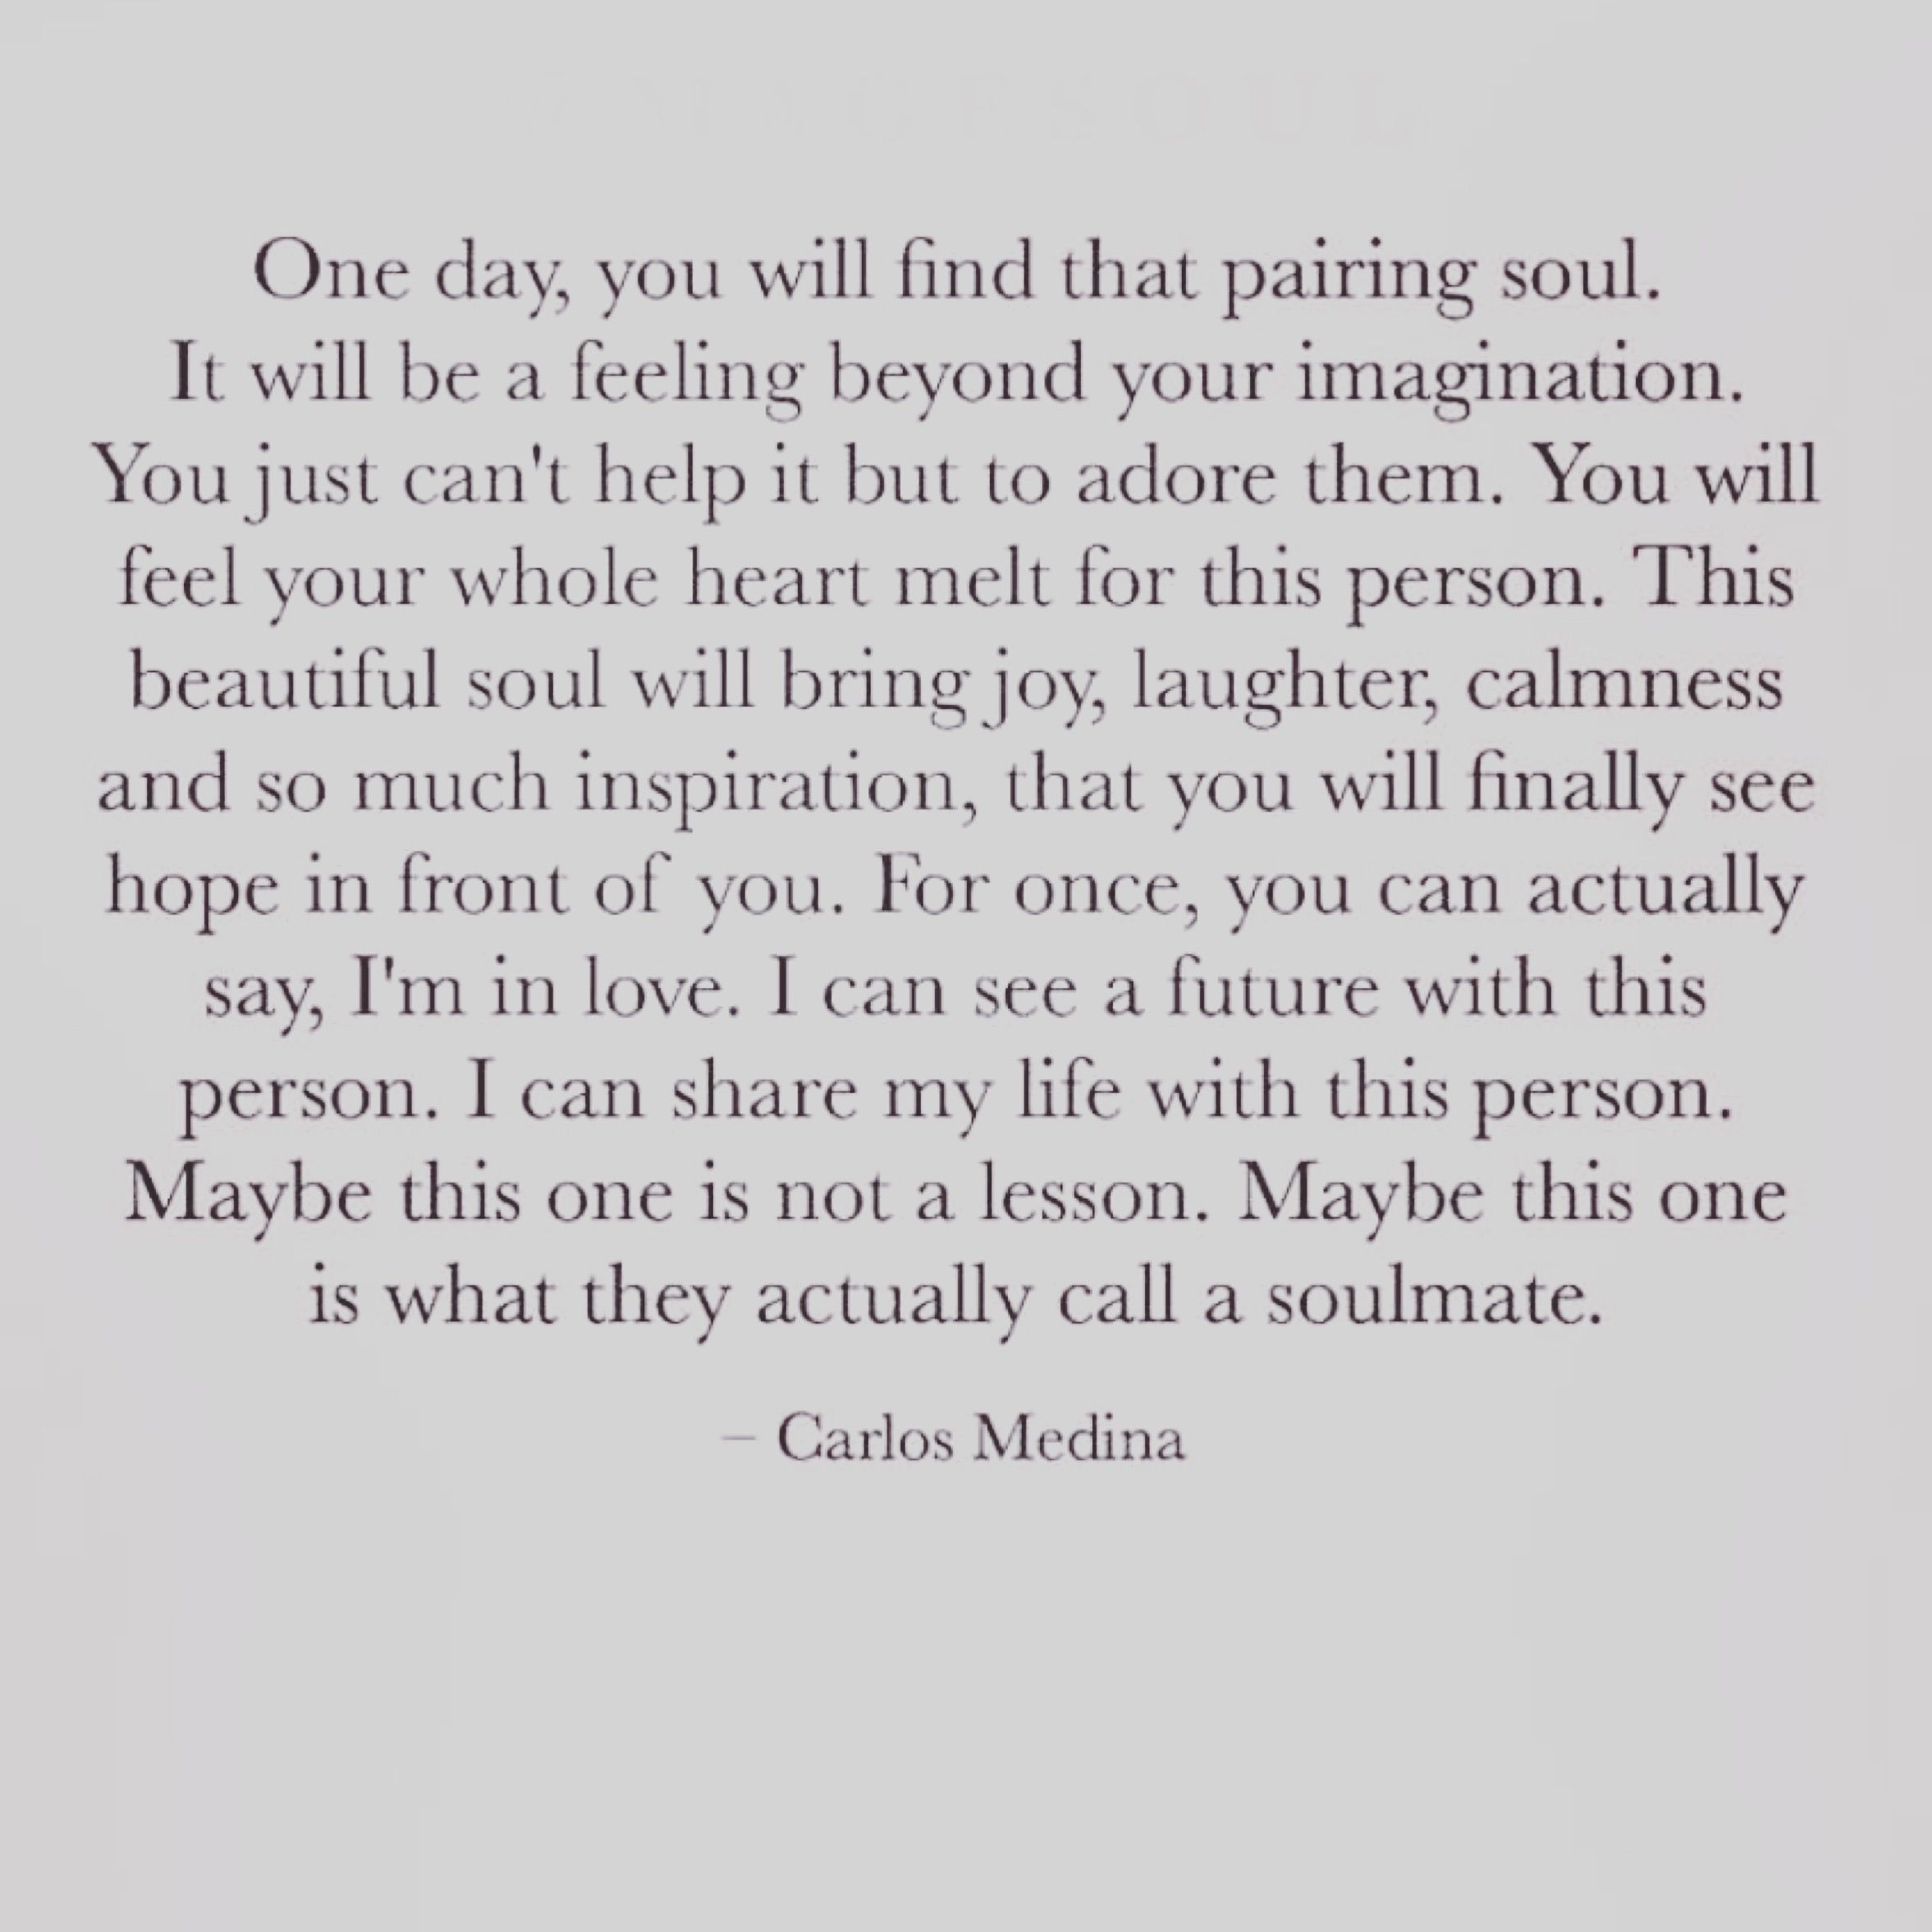 Find My Love Quotes: Carlos Medina Quote #words #soulmate #soul